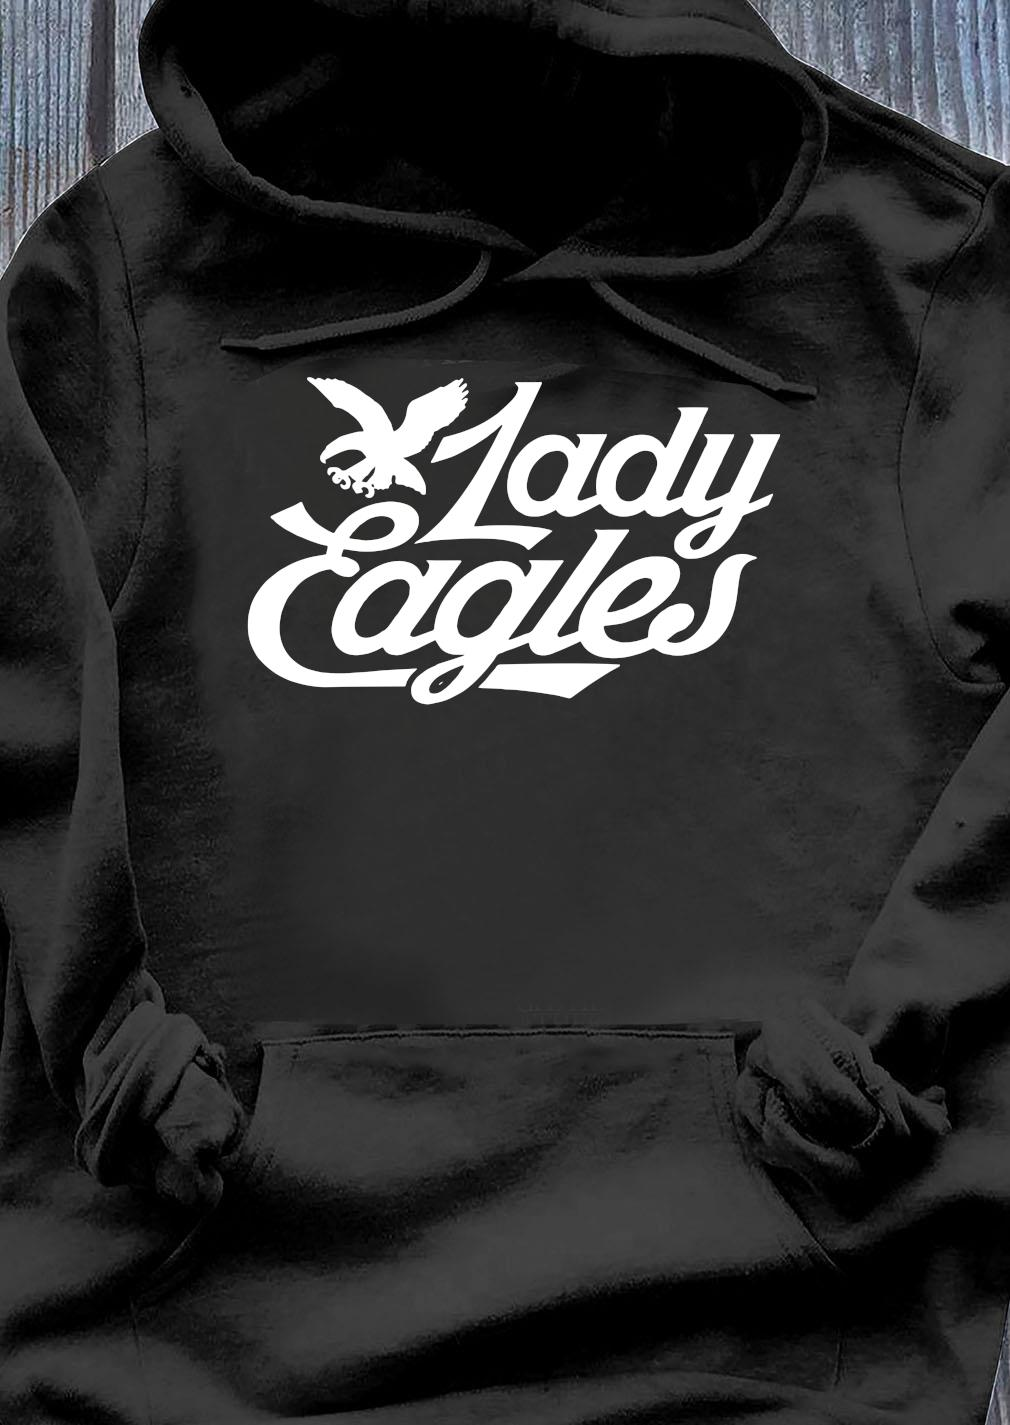 Lady Eagles Shirt Hoodie